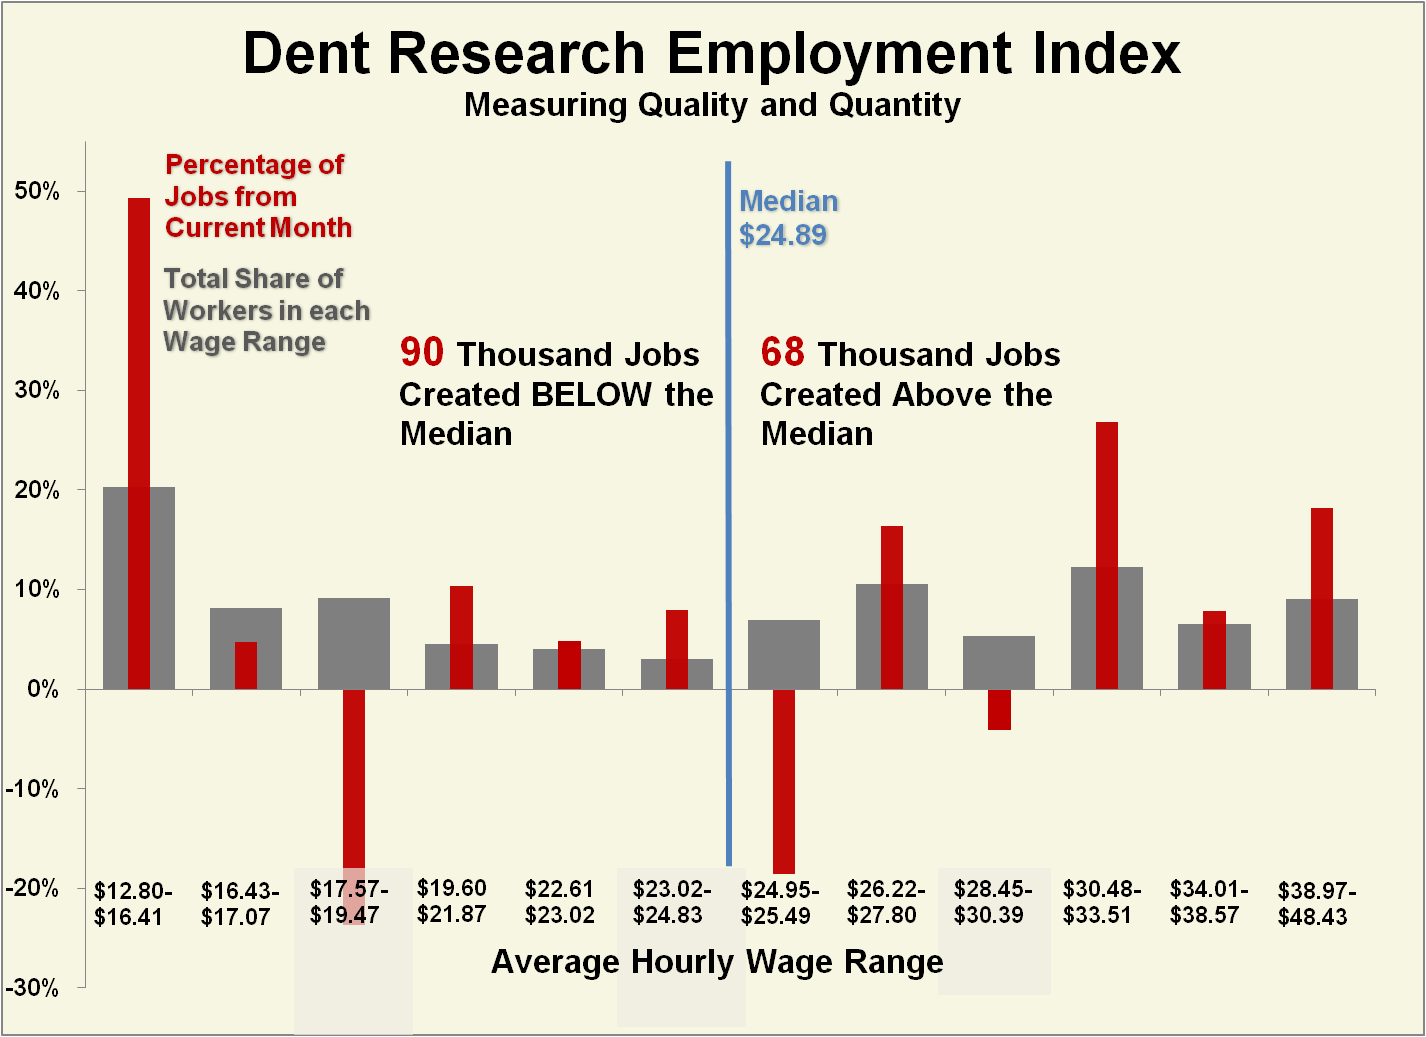 press release dent research employment index confirms spike in see larger image